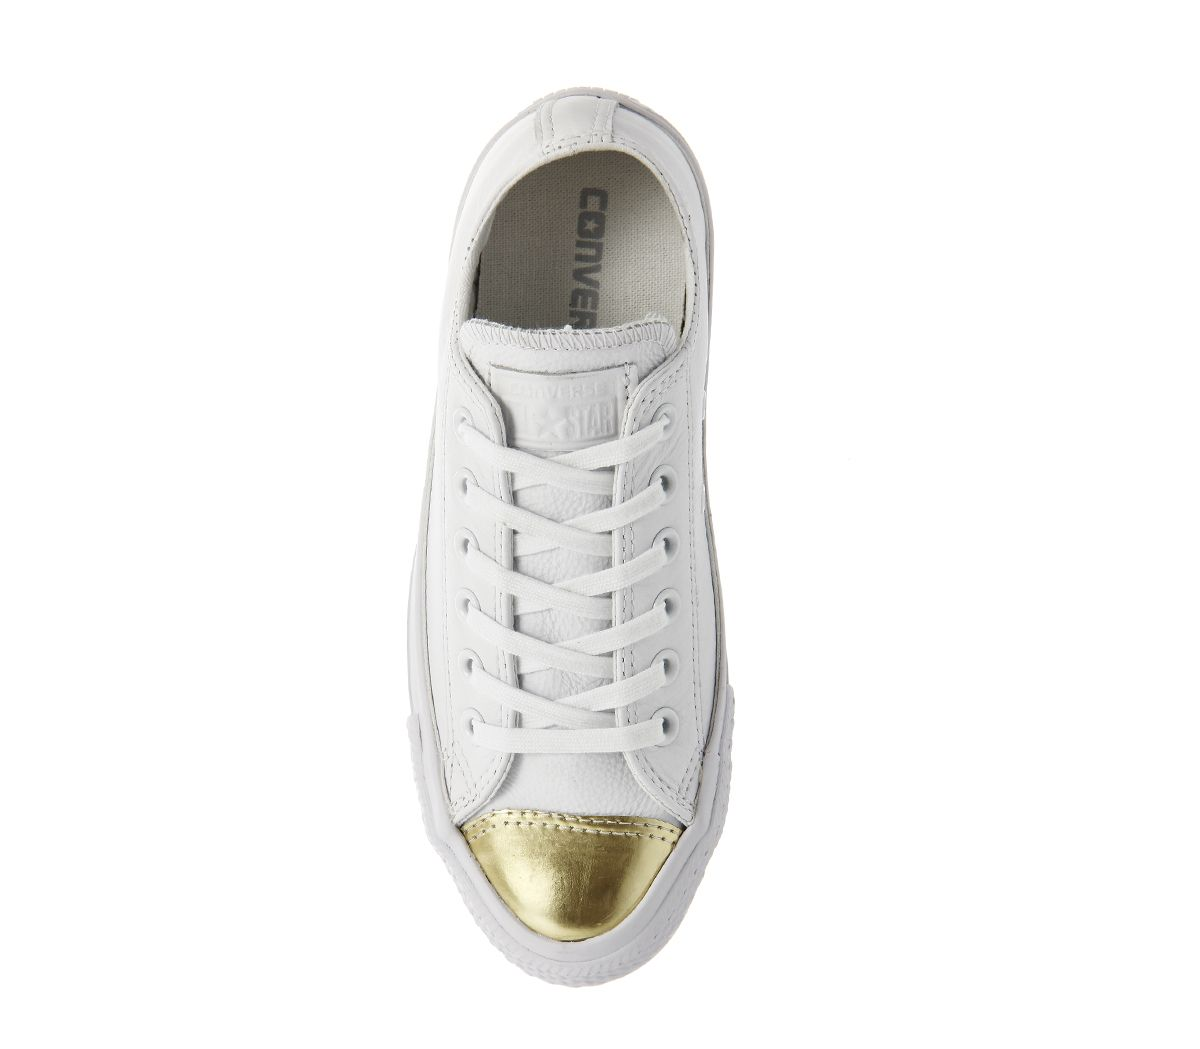 Buy White Mono Chrome Gold Toe Converse All Star Low Leather Trainers from  OFFICE.co